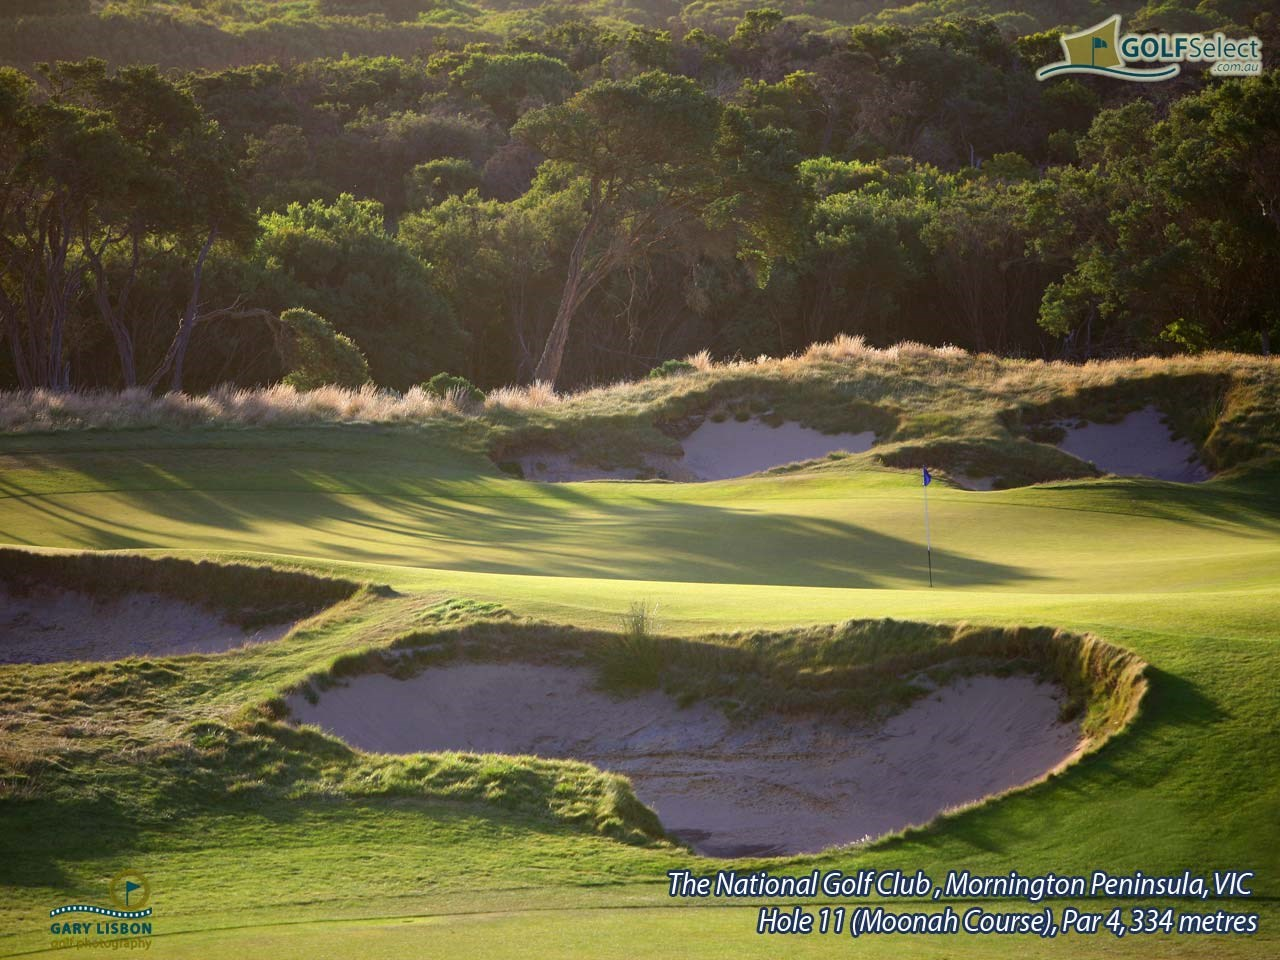 The National Golf Club (Moonah Course) Hole 11, Par 4, 334 metres